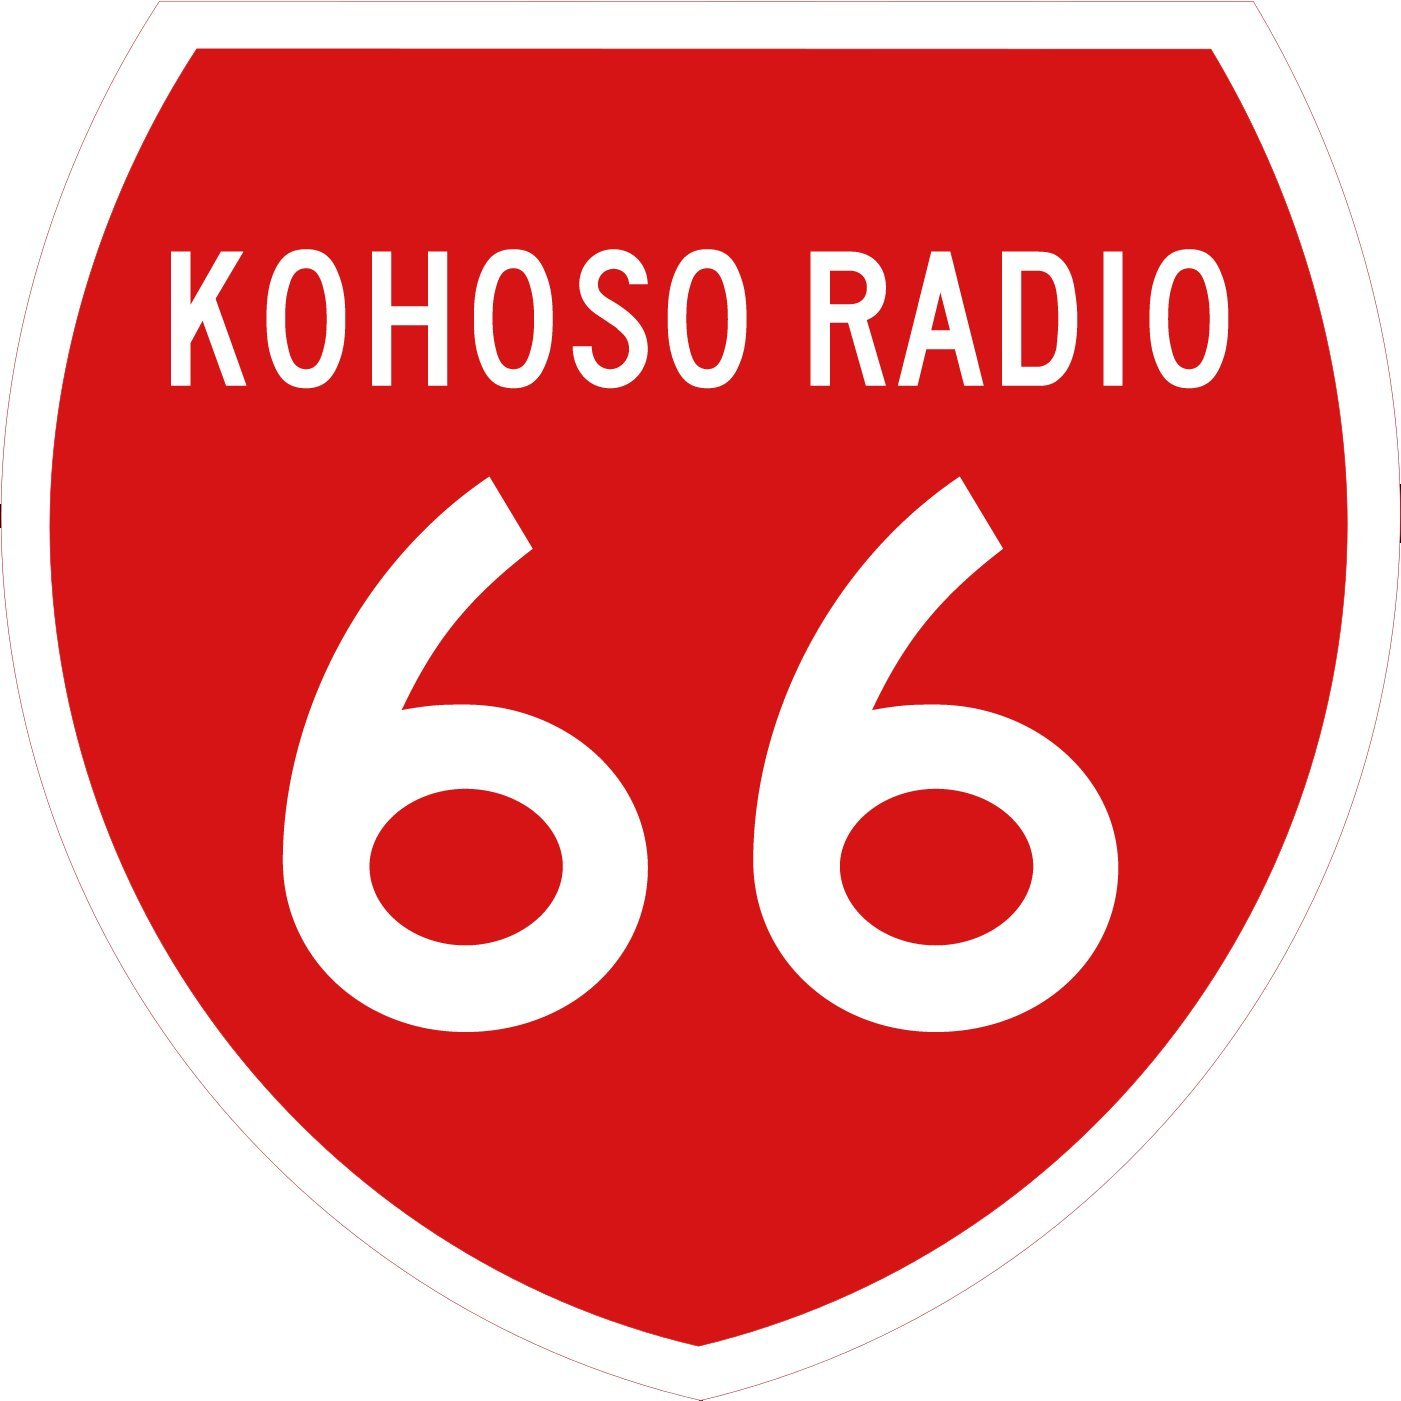 KoHoSo Radio 66 New Zealand Style Highway Shield - April 2016